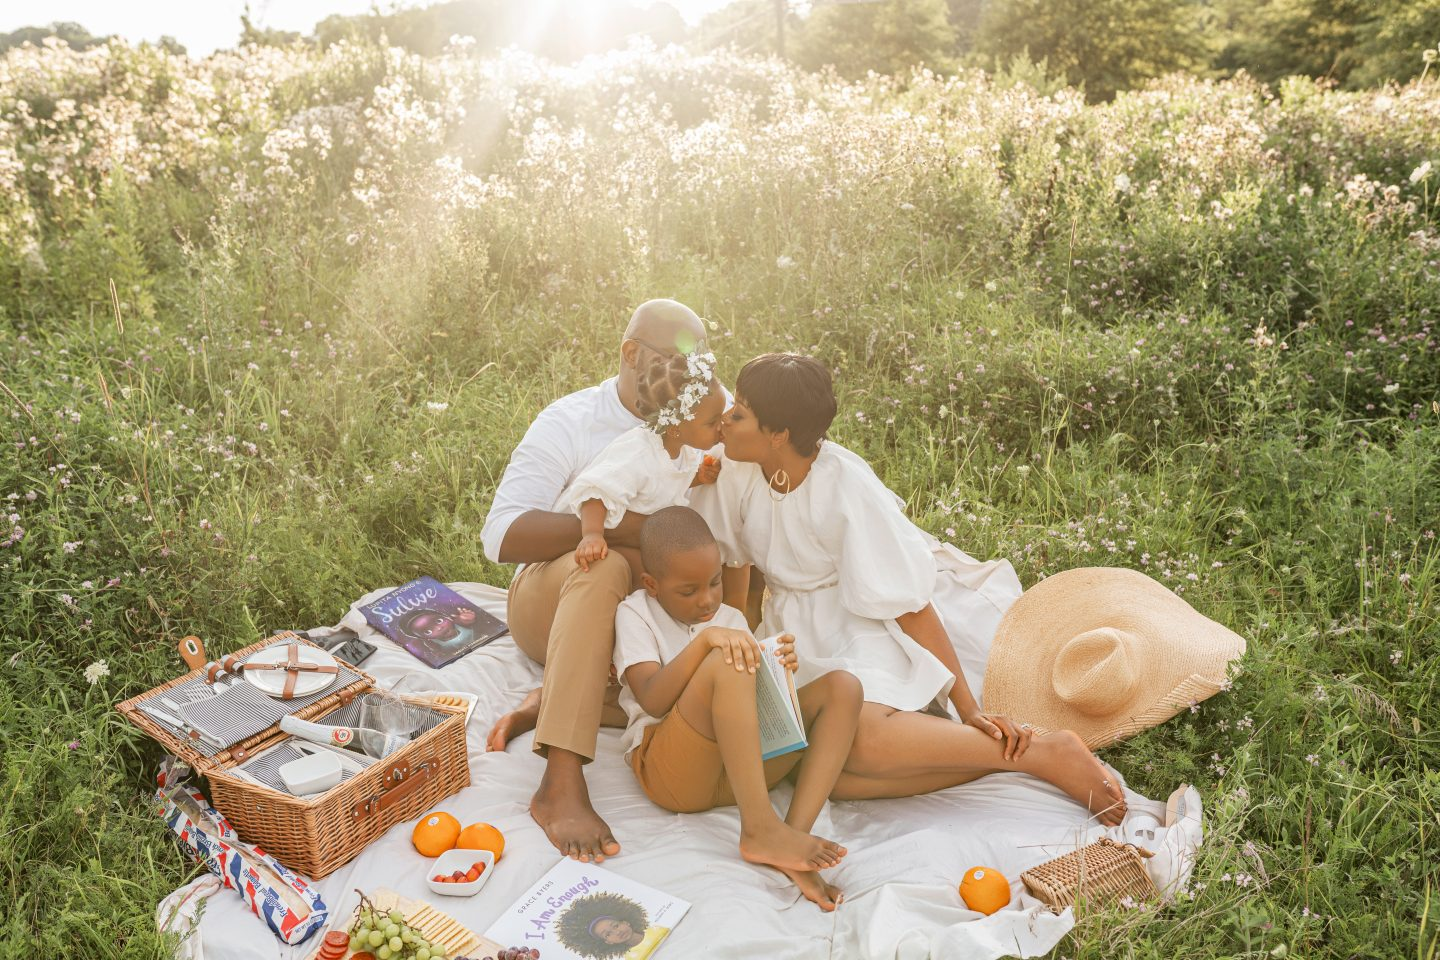 stella-adewunmi-of-jadore-fashion-blog-shares-7-ways-to-make-thanksgiving-day-special-with-family